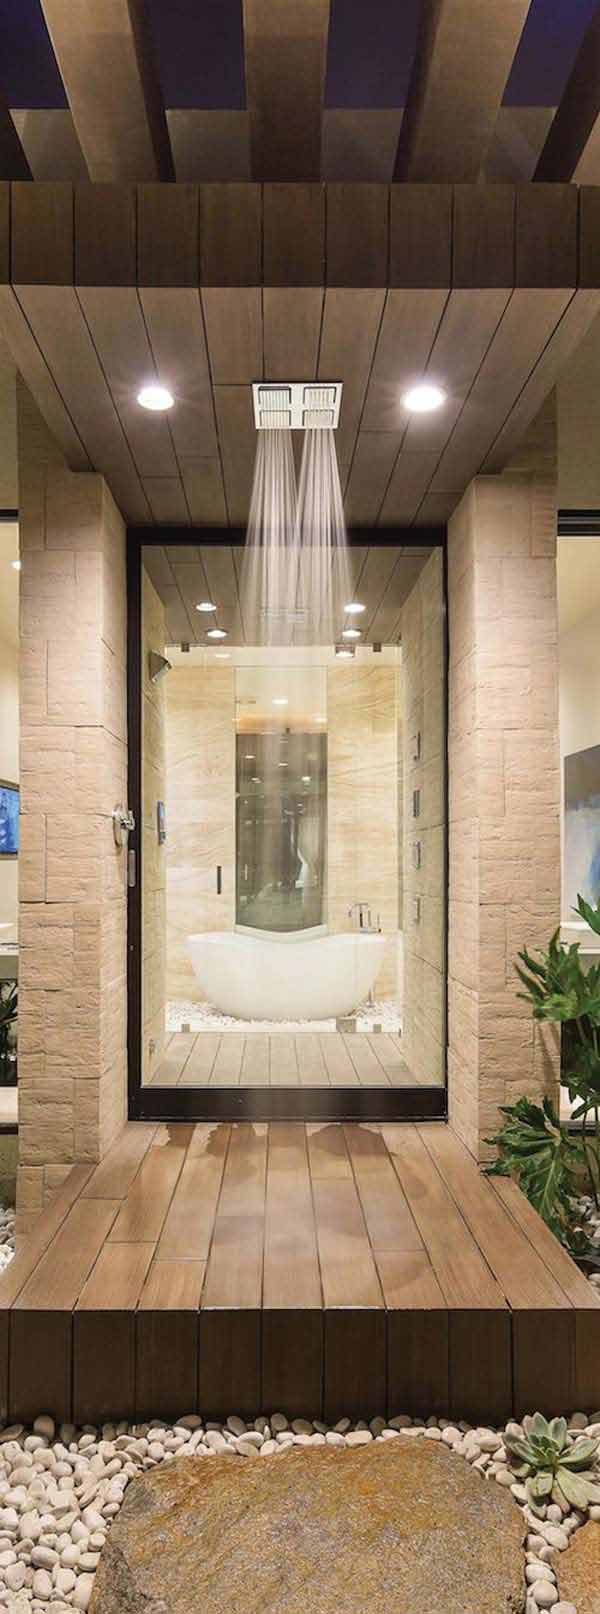 Rain-Showers-Bathroom-ideas-woohome-22